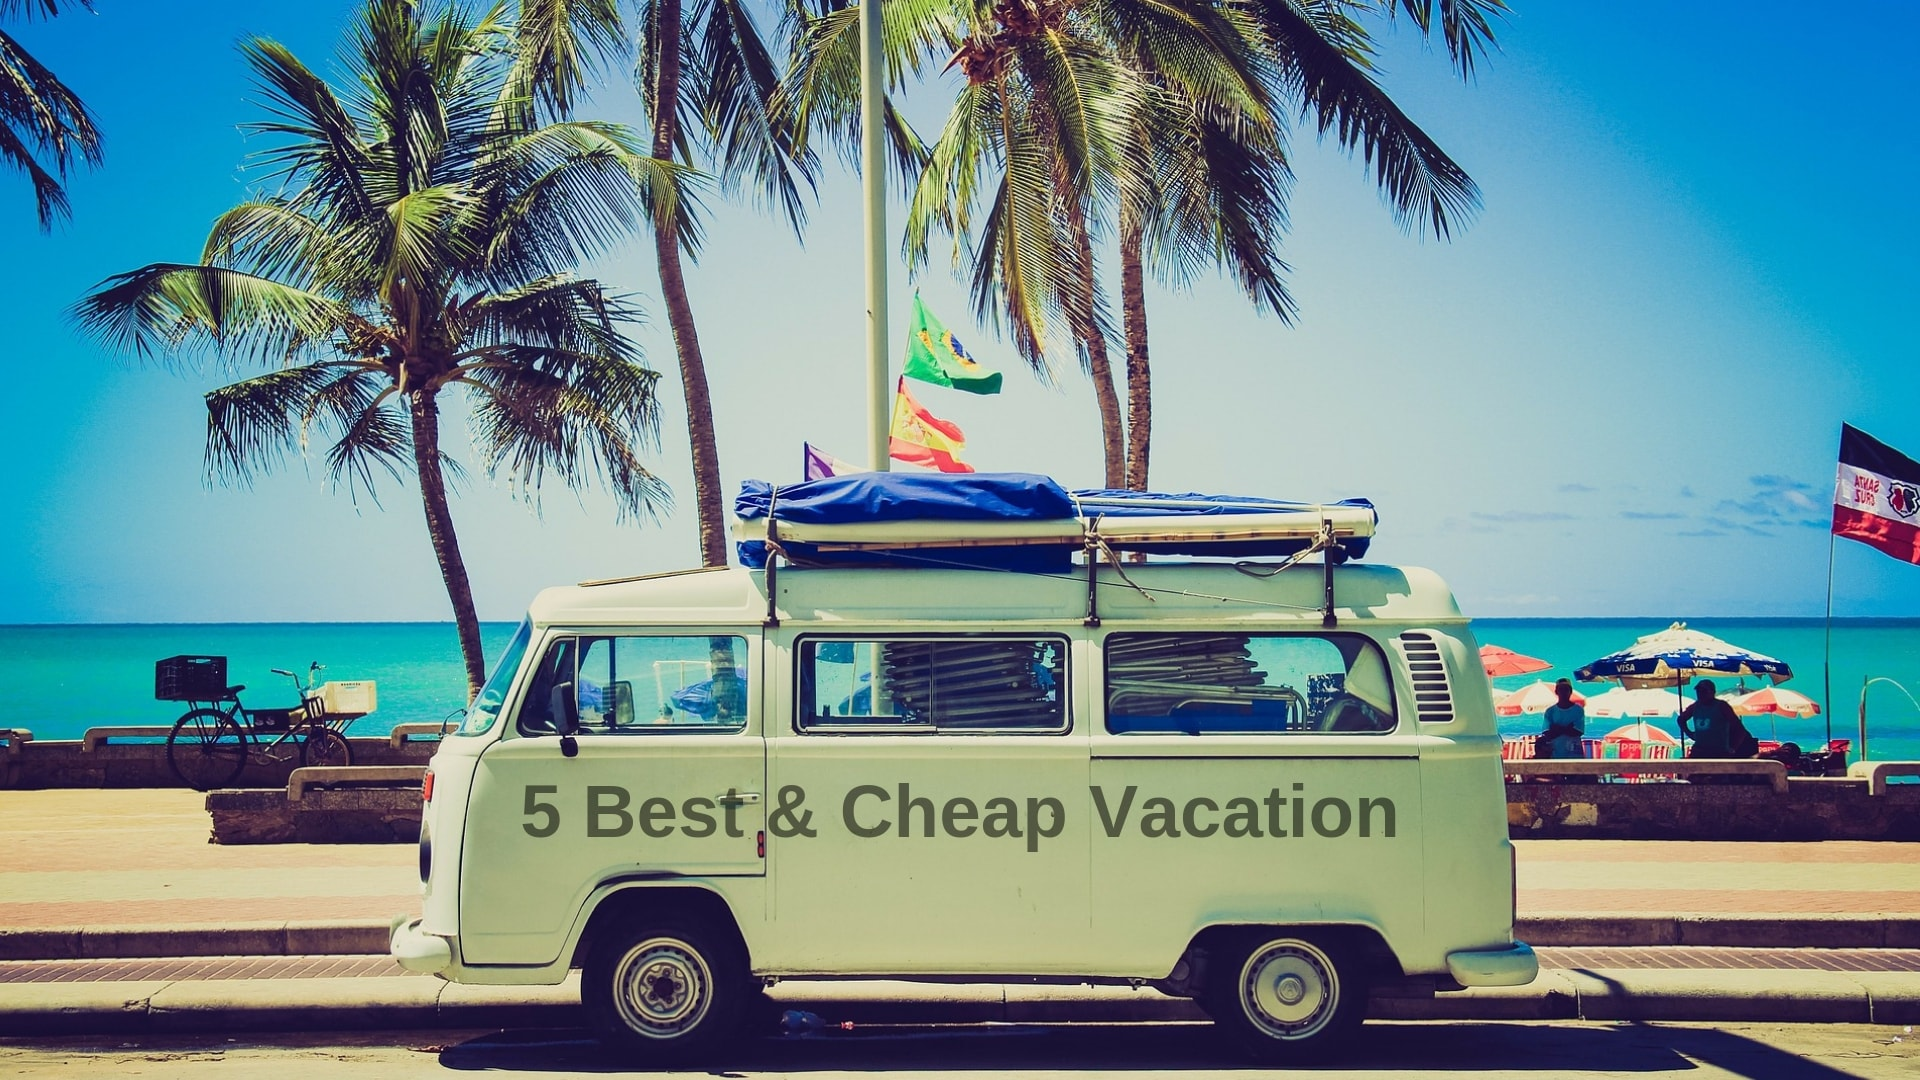 5 Best & Cheap Vacations Everyone Should Take in Their Lifetime